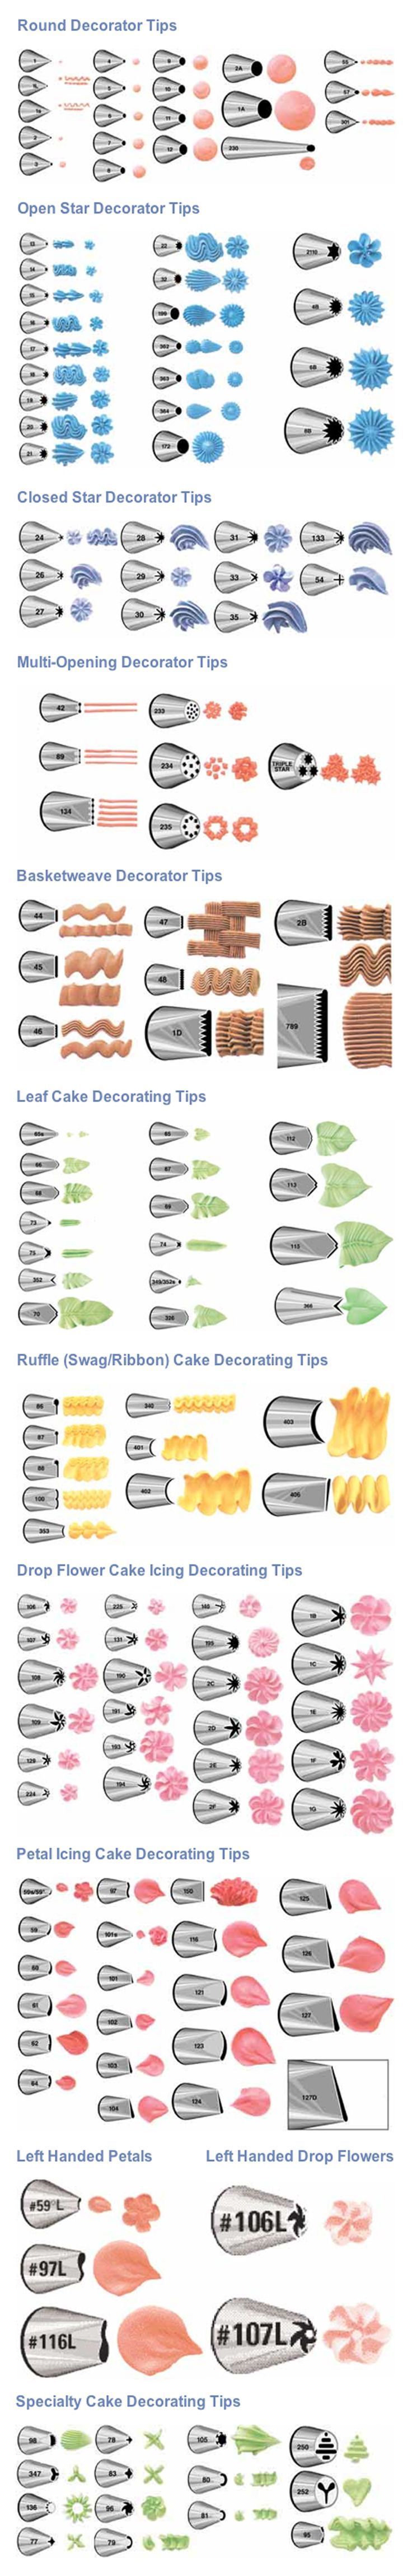 Can't get many more icing tips than this! Practice enough and you can decorate any cake or cupcake! (Cake Decorating)